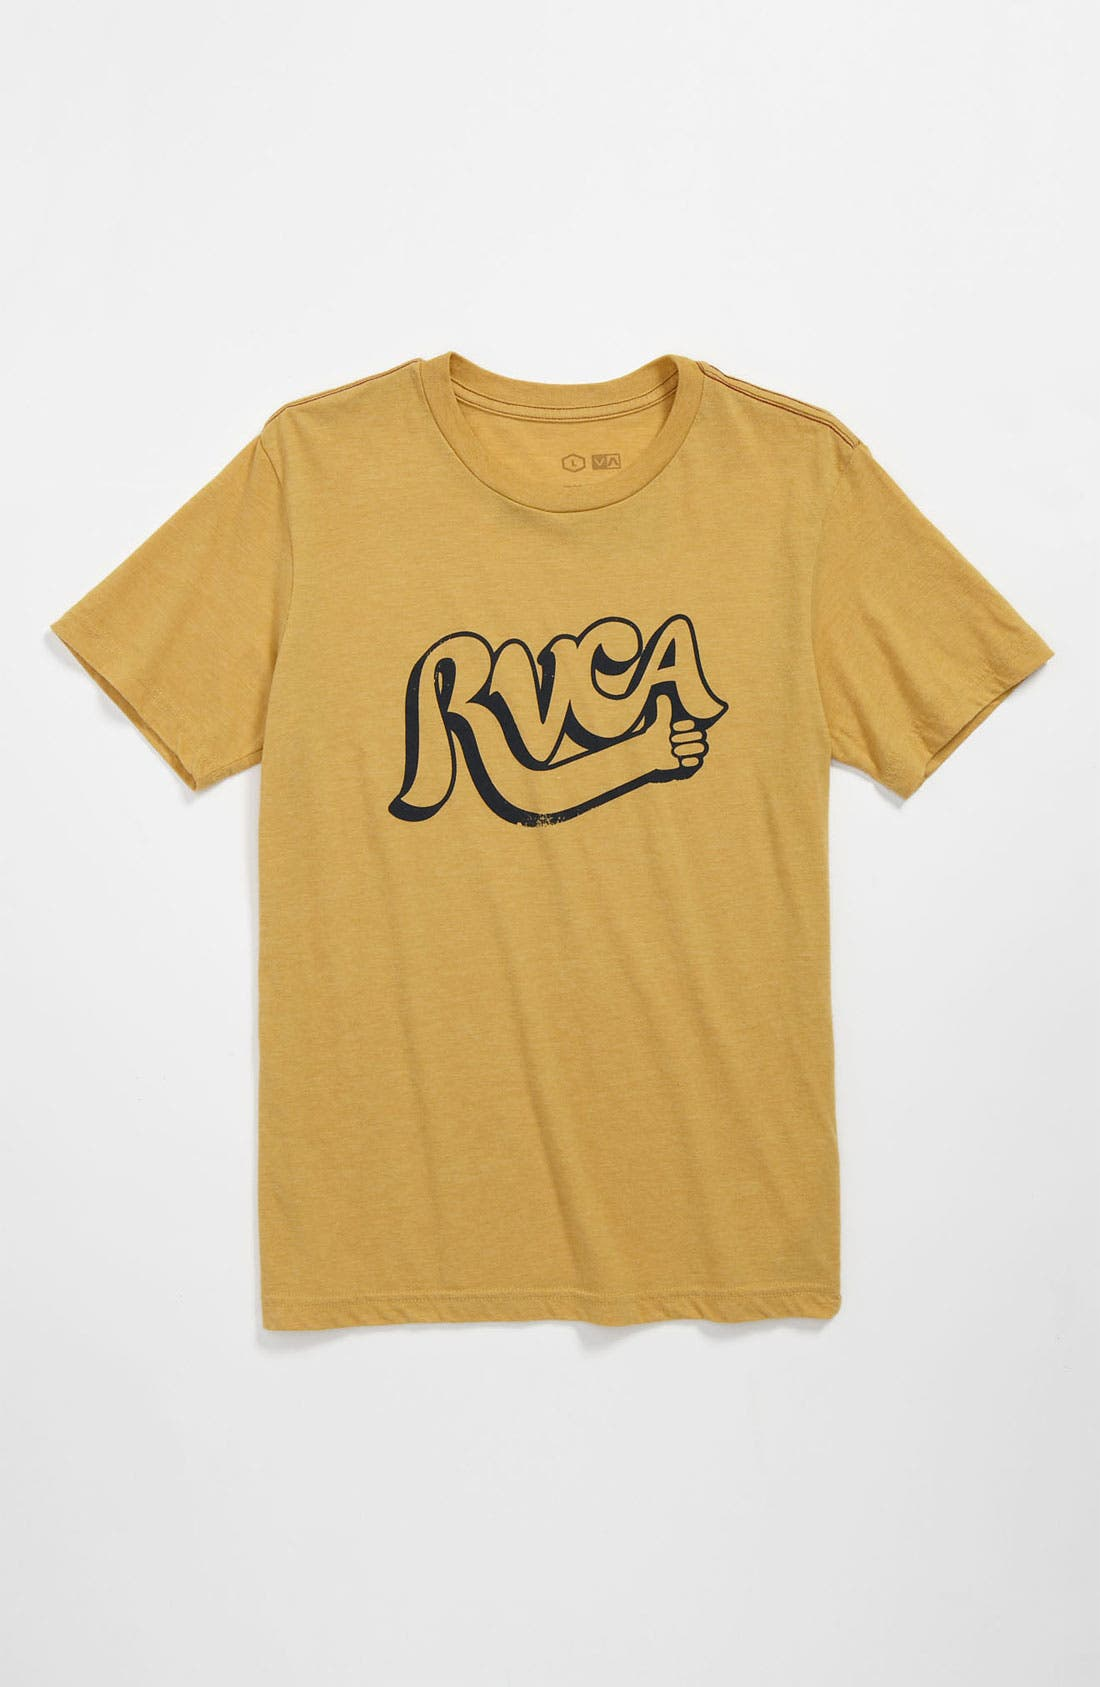 Alternate Image 1 Selected - RVCA 'Good Job' Graphic T-Shirt (Big Boys)